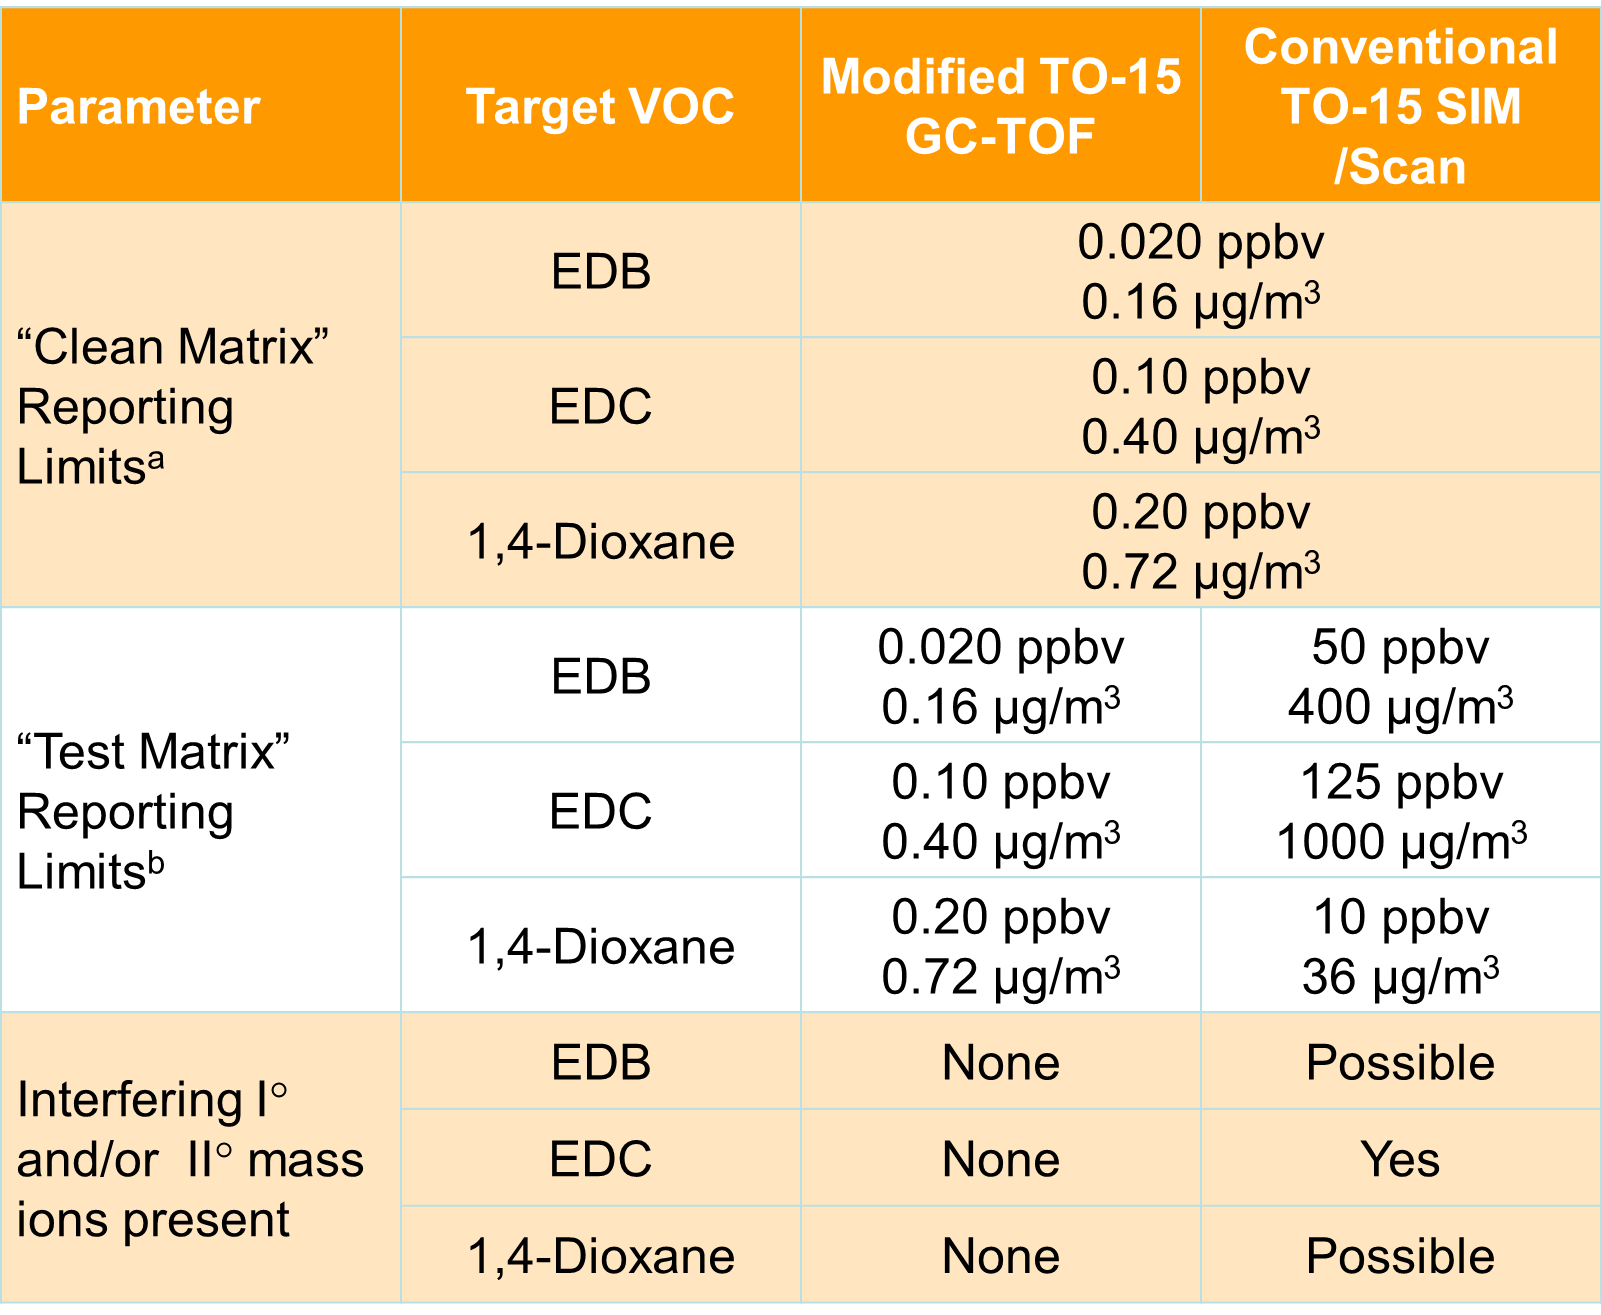 Performance comparison of Modified TO-15 GC-TOF/MS and conventional TO-15 SIM/Scan for test matrix samples